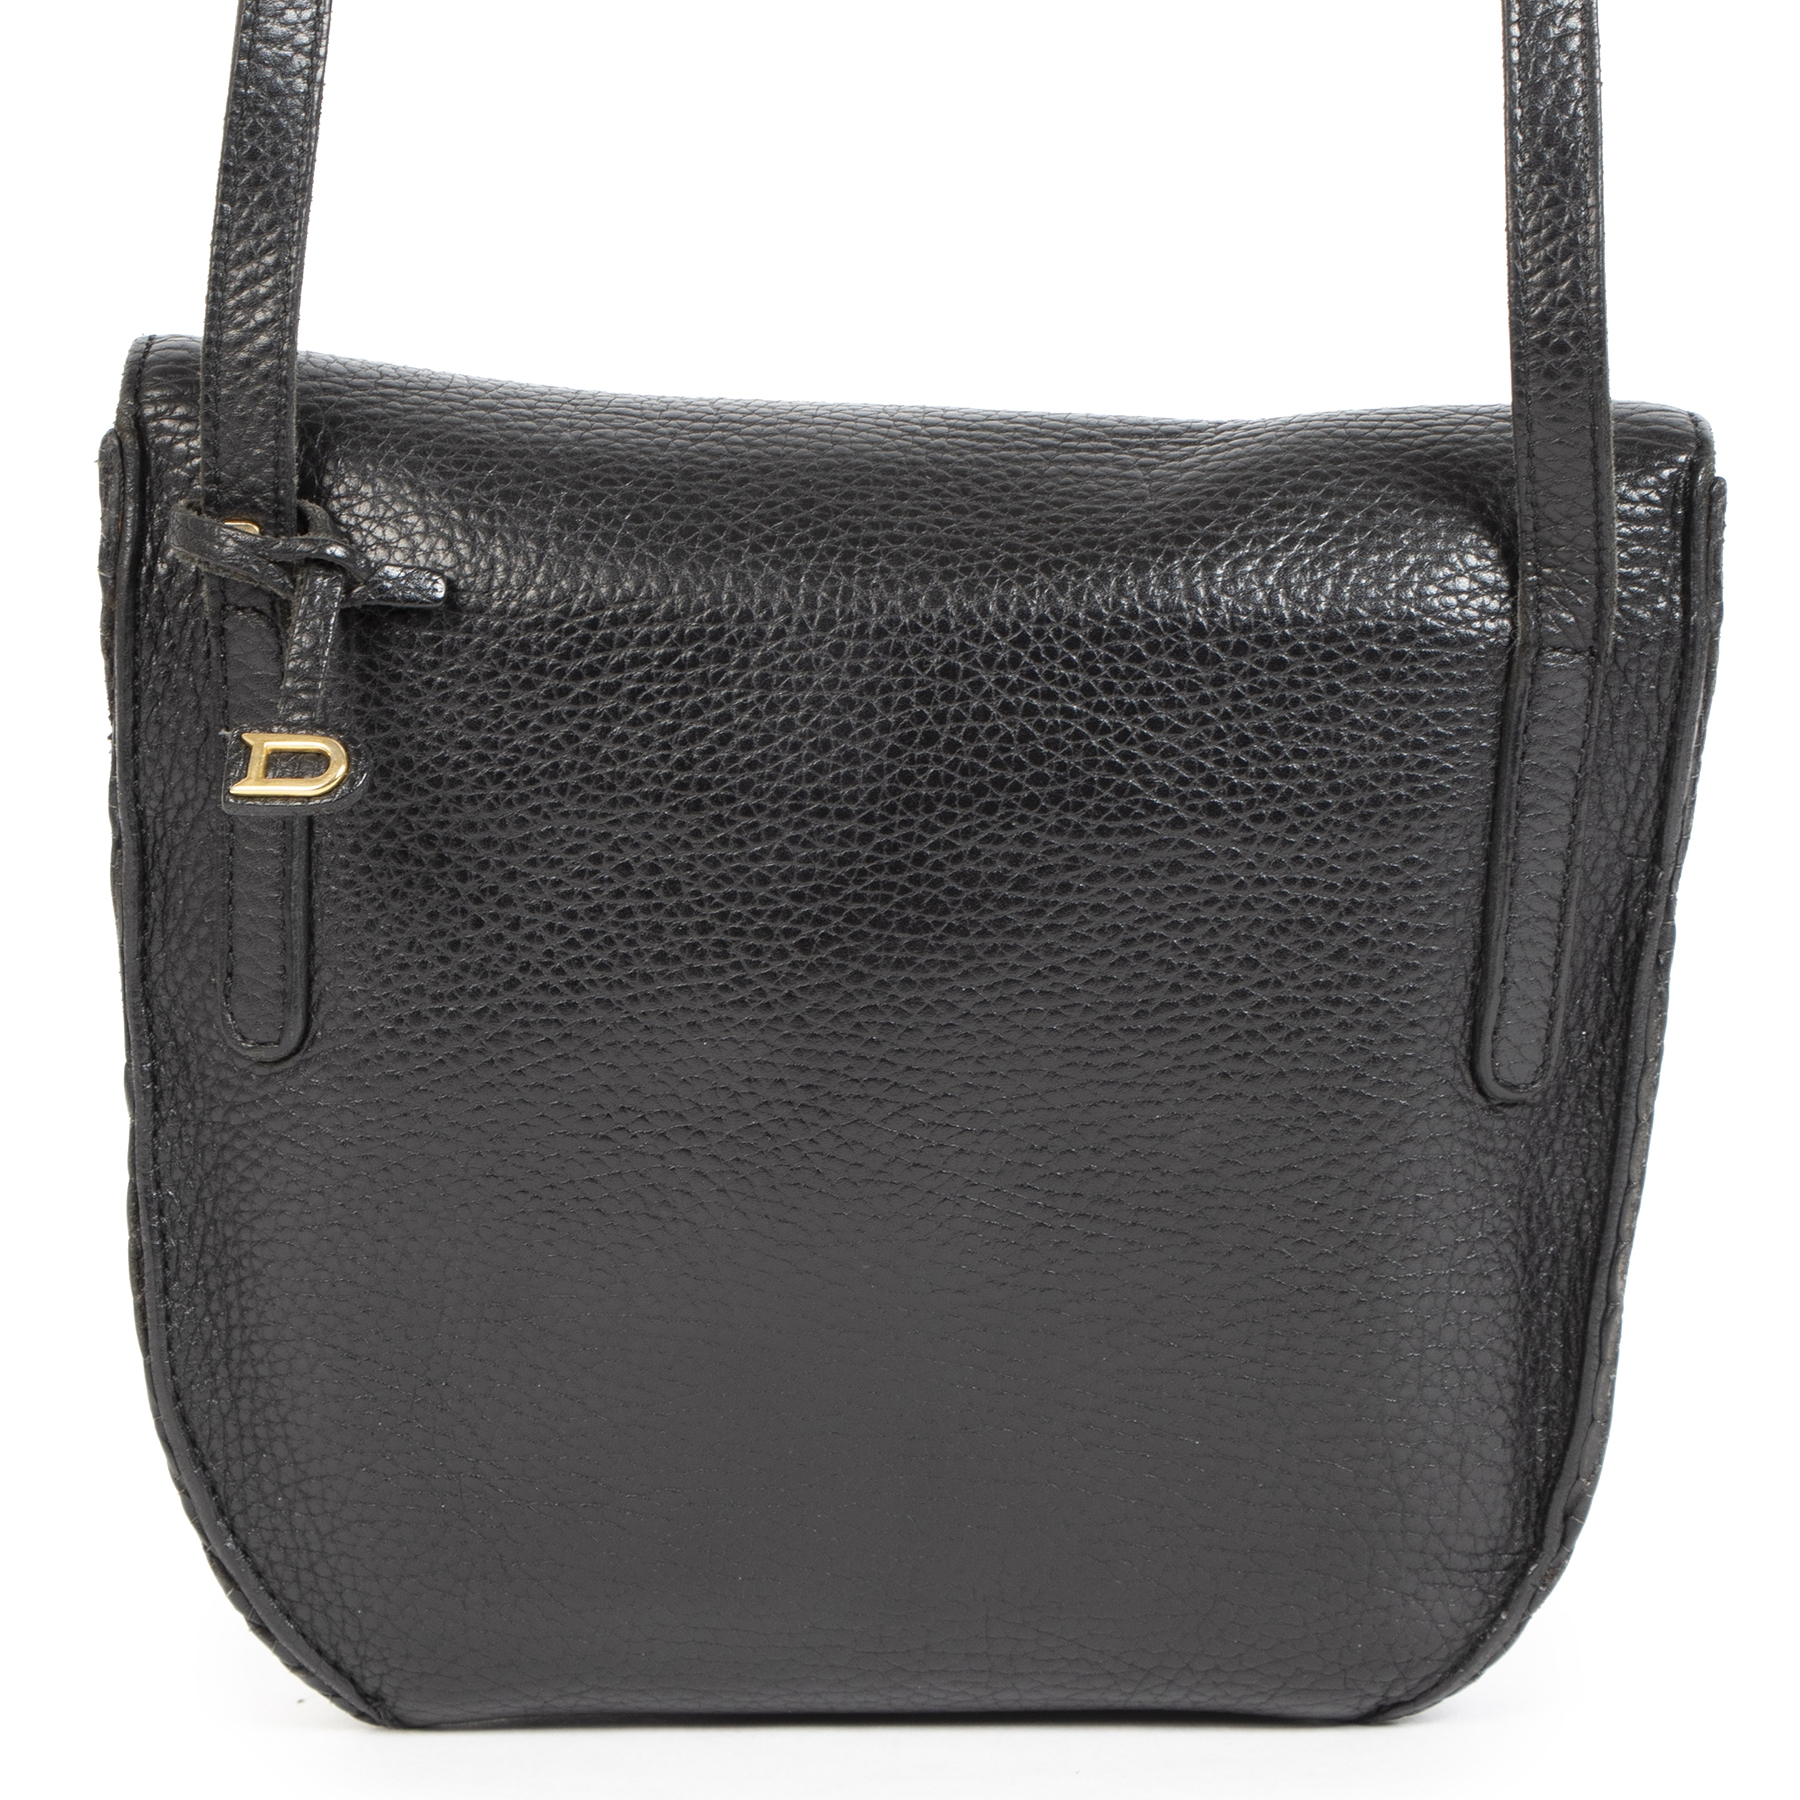 Authentic Delvaux Toile De Cuir Black Crossbody  secondhand at the right price  safe and secure online LabelLOV luxury brand Antwerp Belgium